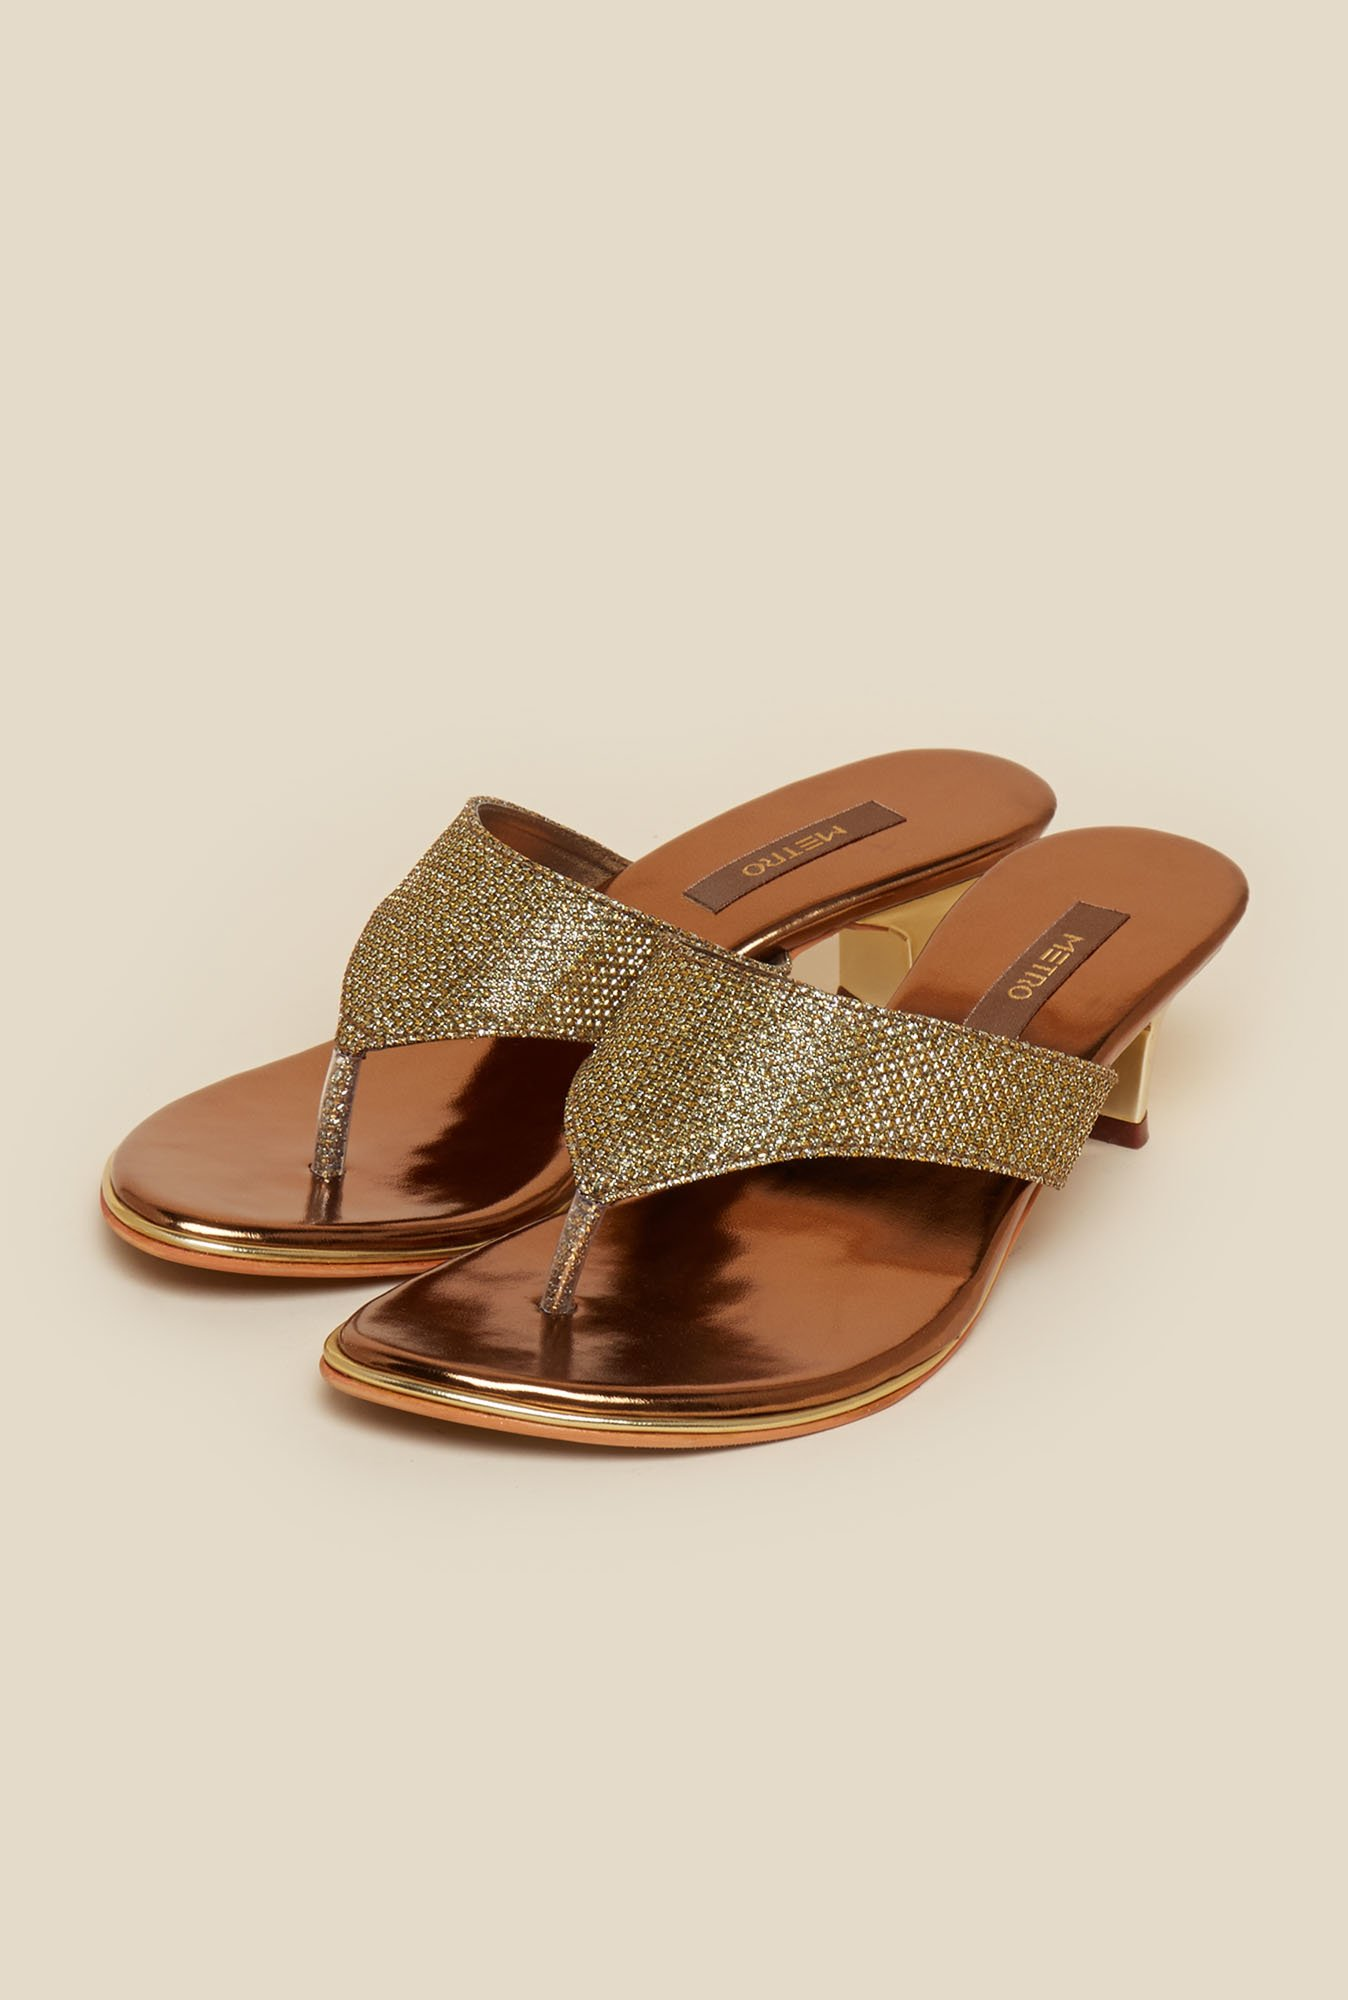 Metro Antique Gold Slip-On Kitten Heel Sandals